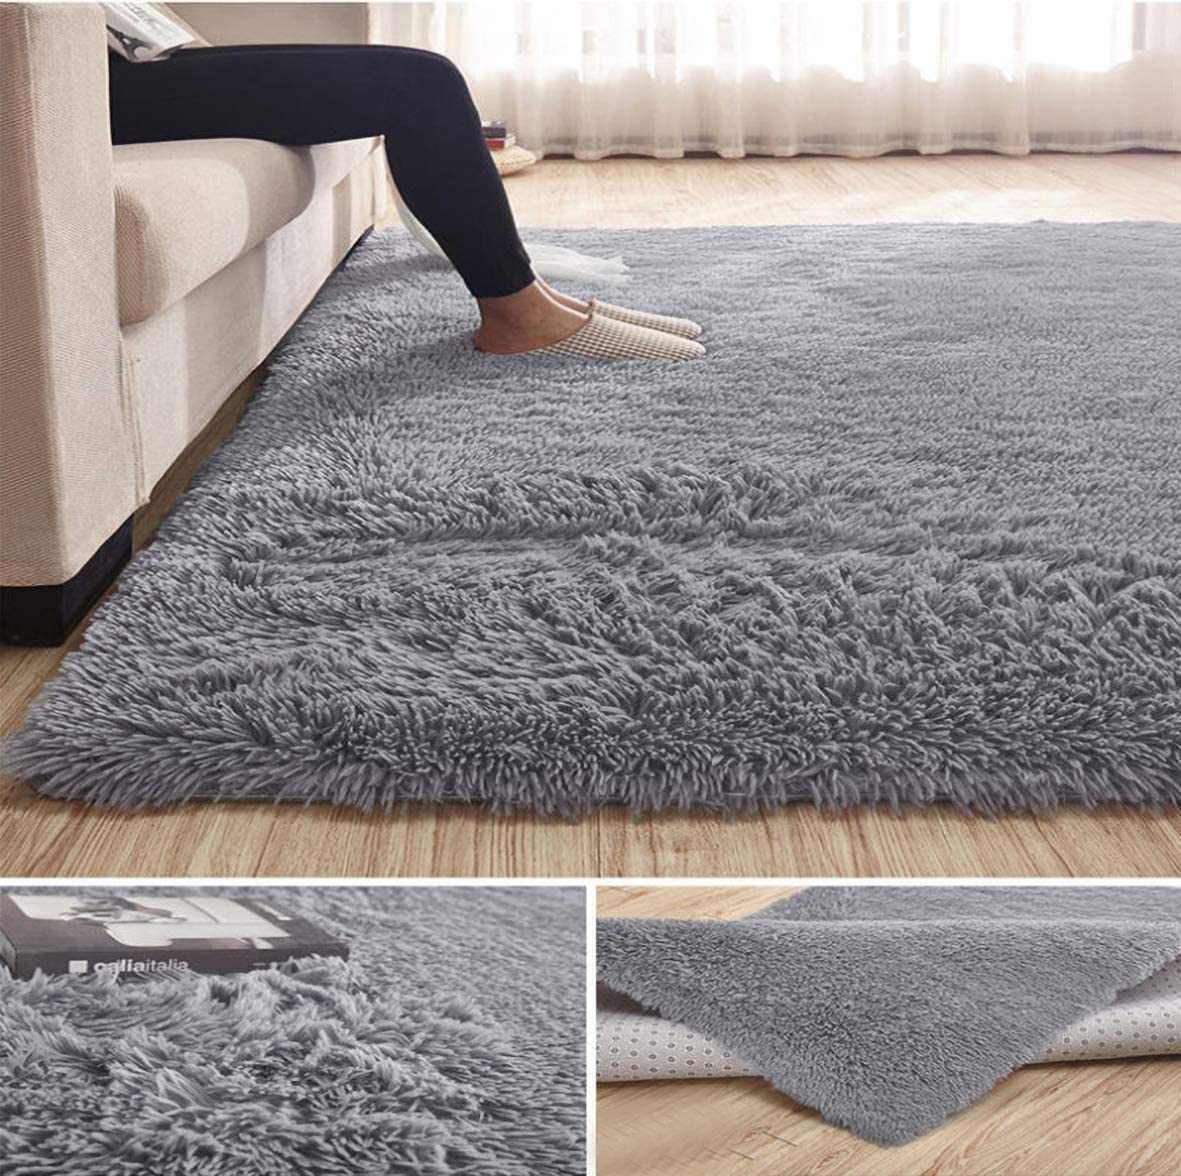 Super Soft Large Shaggy Fur Area Rug Grey for Bedroom Dorm Nursery Kids Boys Room Modern Indoor Home Decorative Livingroom Carpet Plush Fluffy Comfy Accent Floor Rugs 4x6 Feet